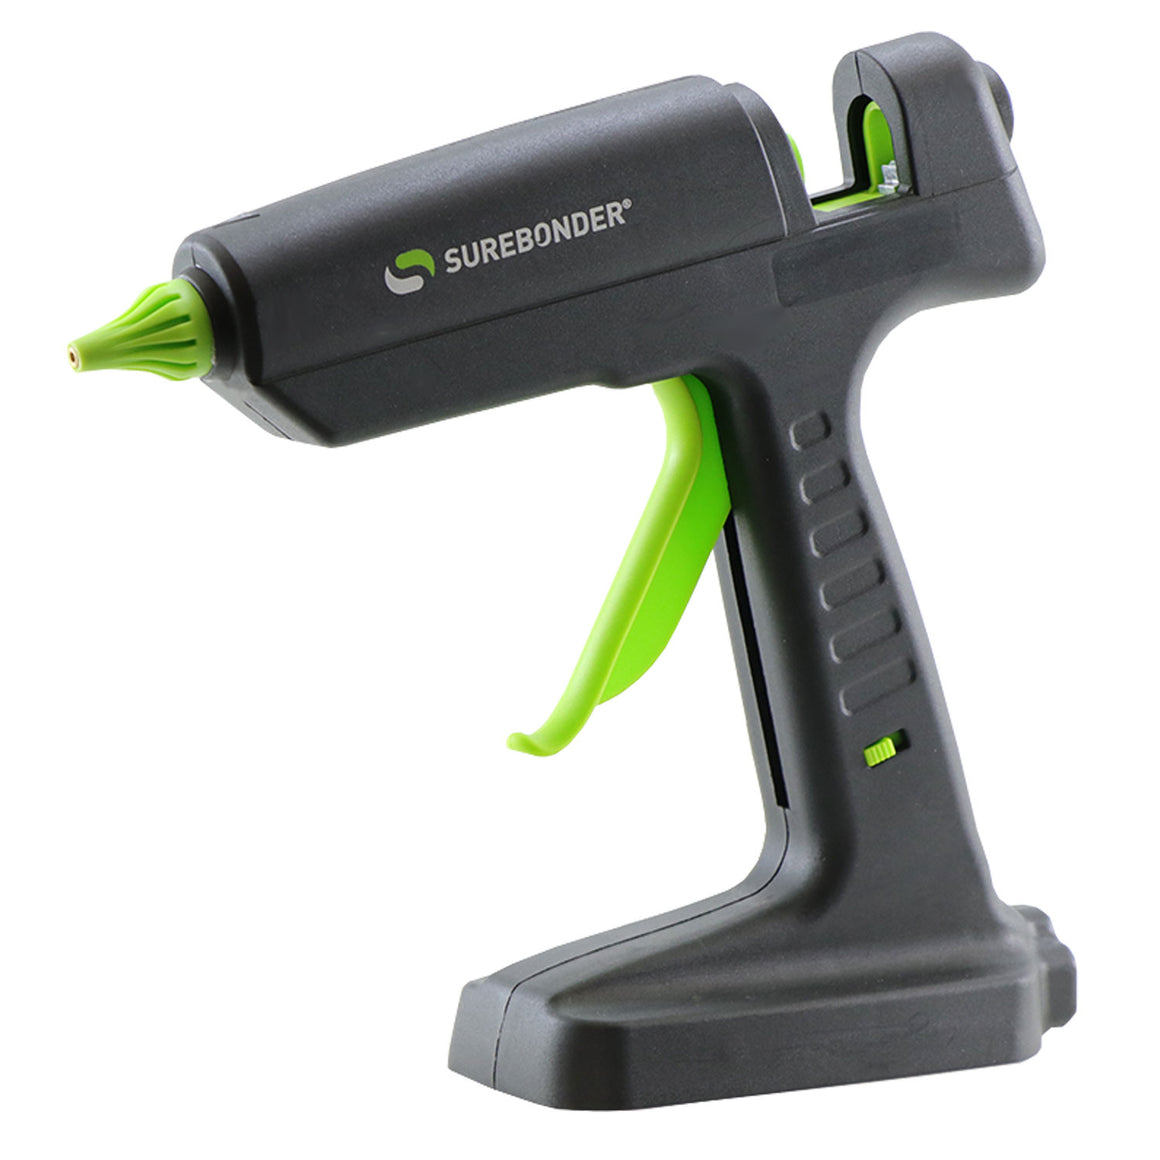 HYBRID-120 120 Watt Corded/18 Volt Lithium Ion Cordless Hybrid Professional Heavy Duty Full Size Hot Glue Gun - Surebonder